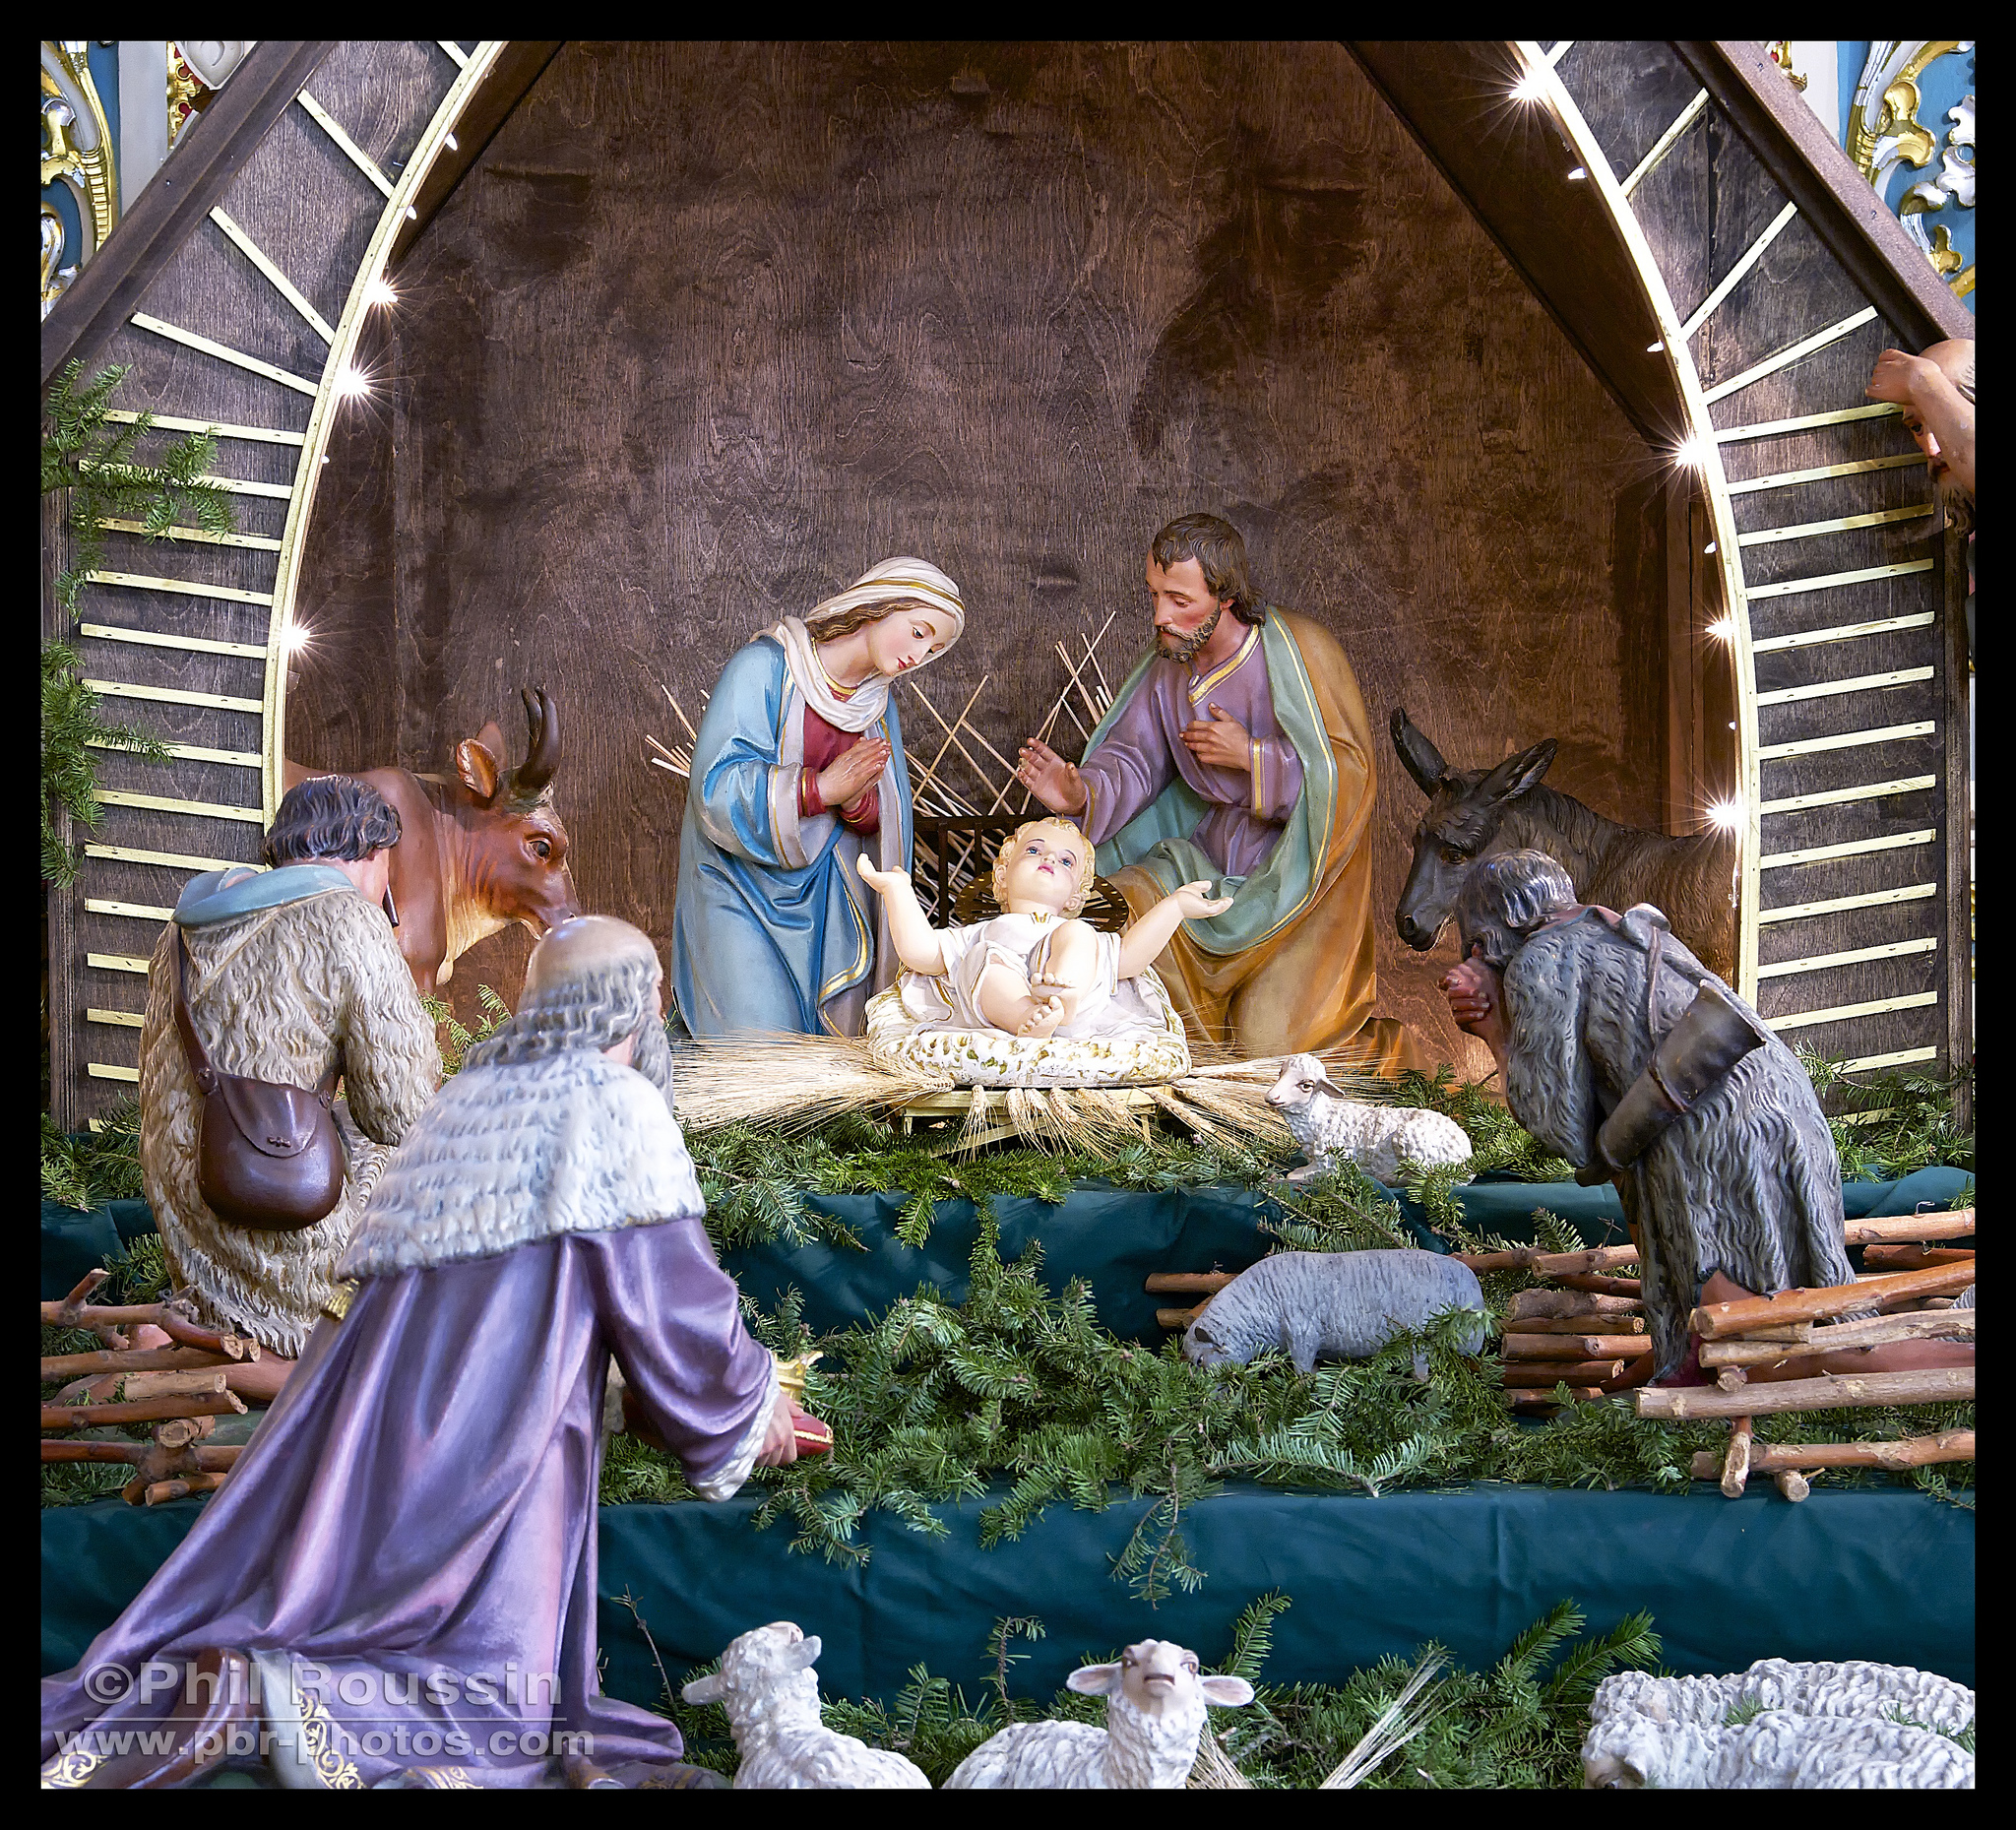 The Nativity scene is placed at the altar of the Blessed Mother during the Christmas season.